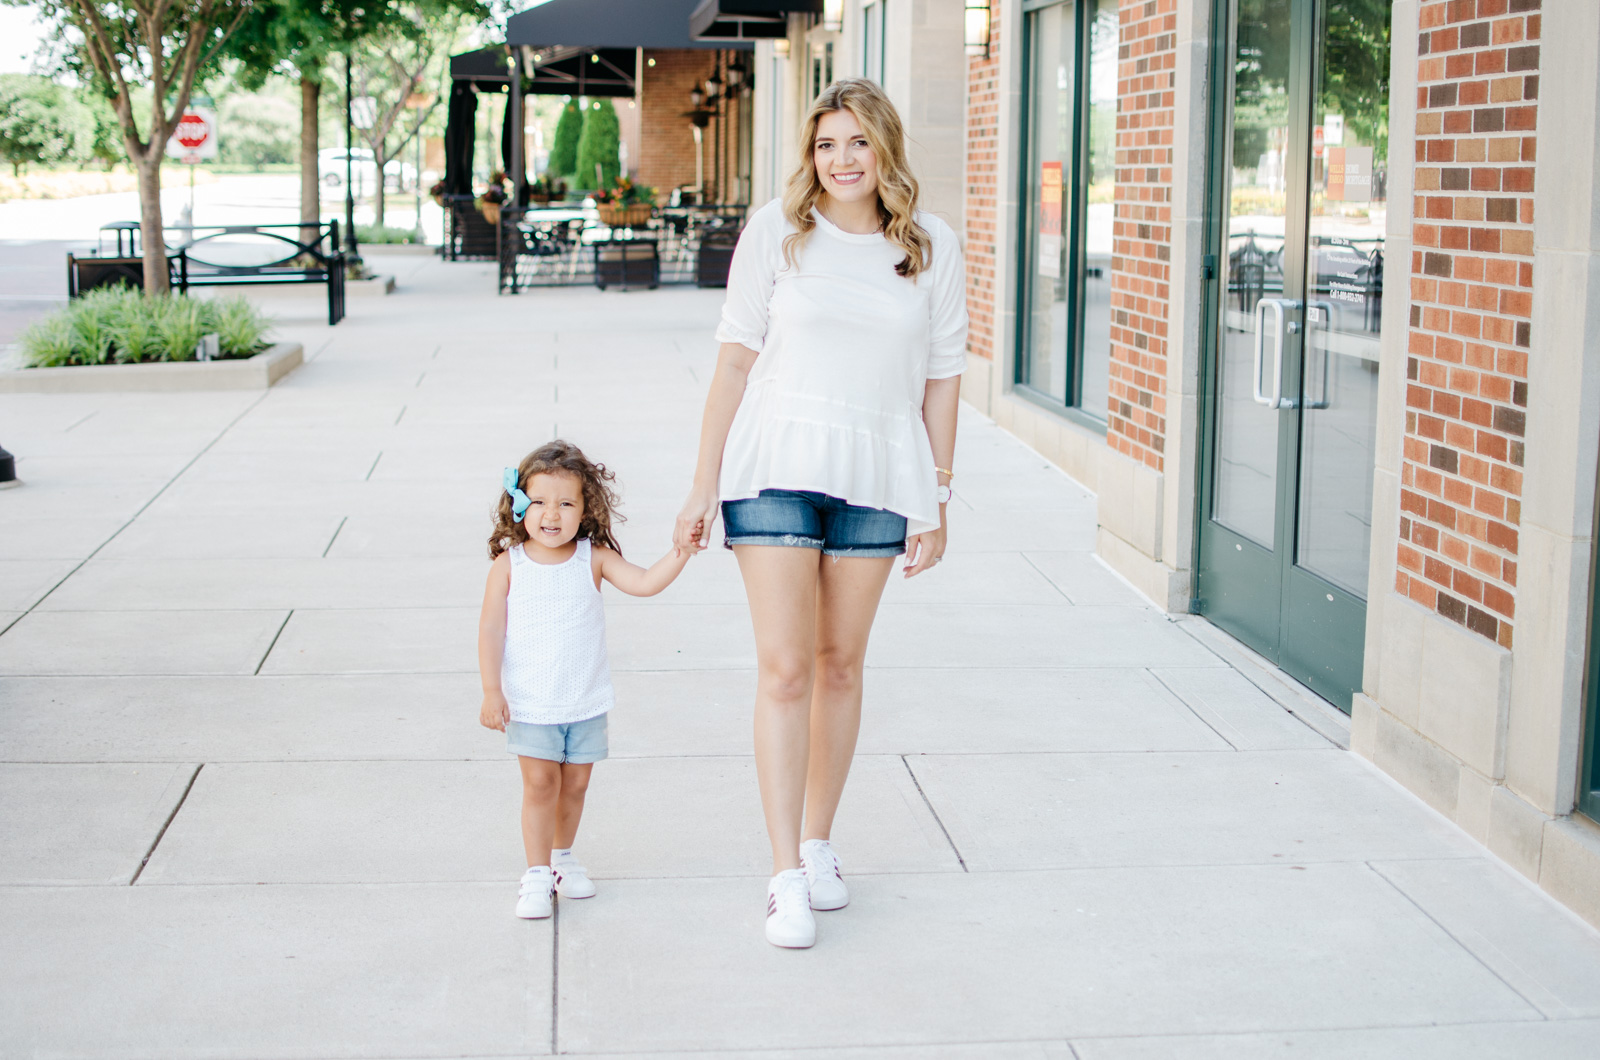 e6575c4c5c6 mommy daughter summer outfits - adidas sneakers summer outfits | For more  mother-daughter outfit